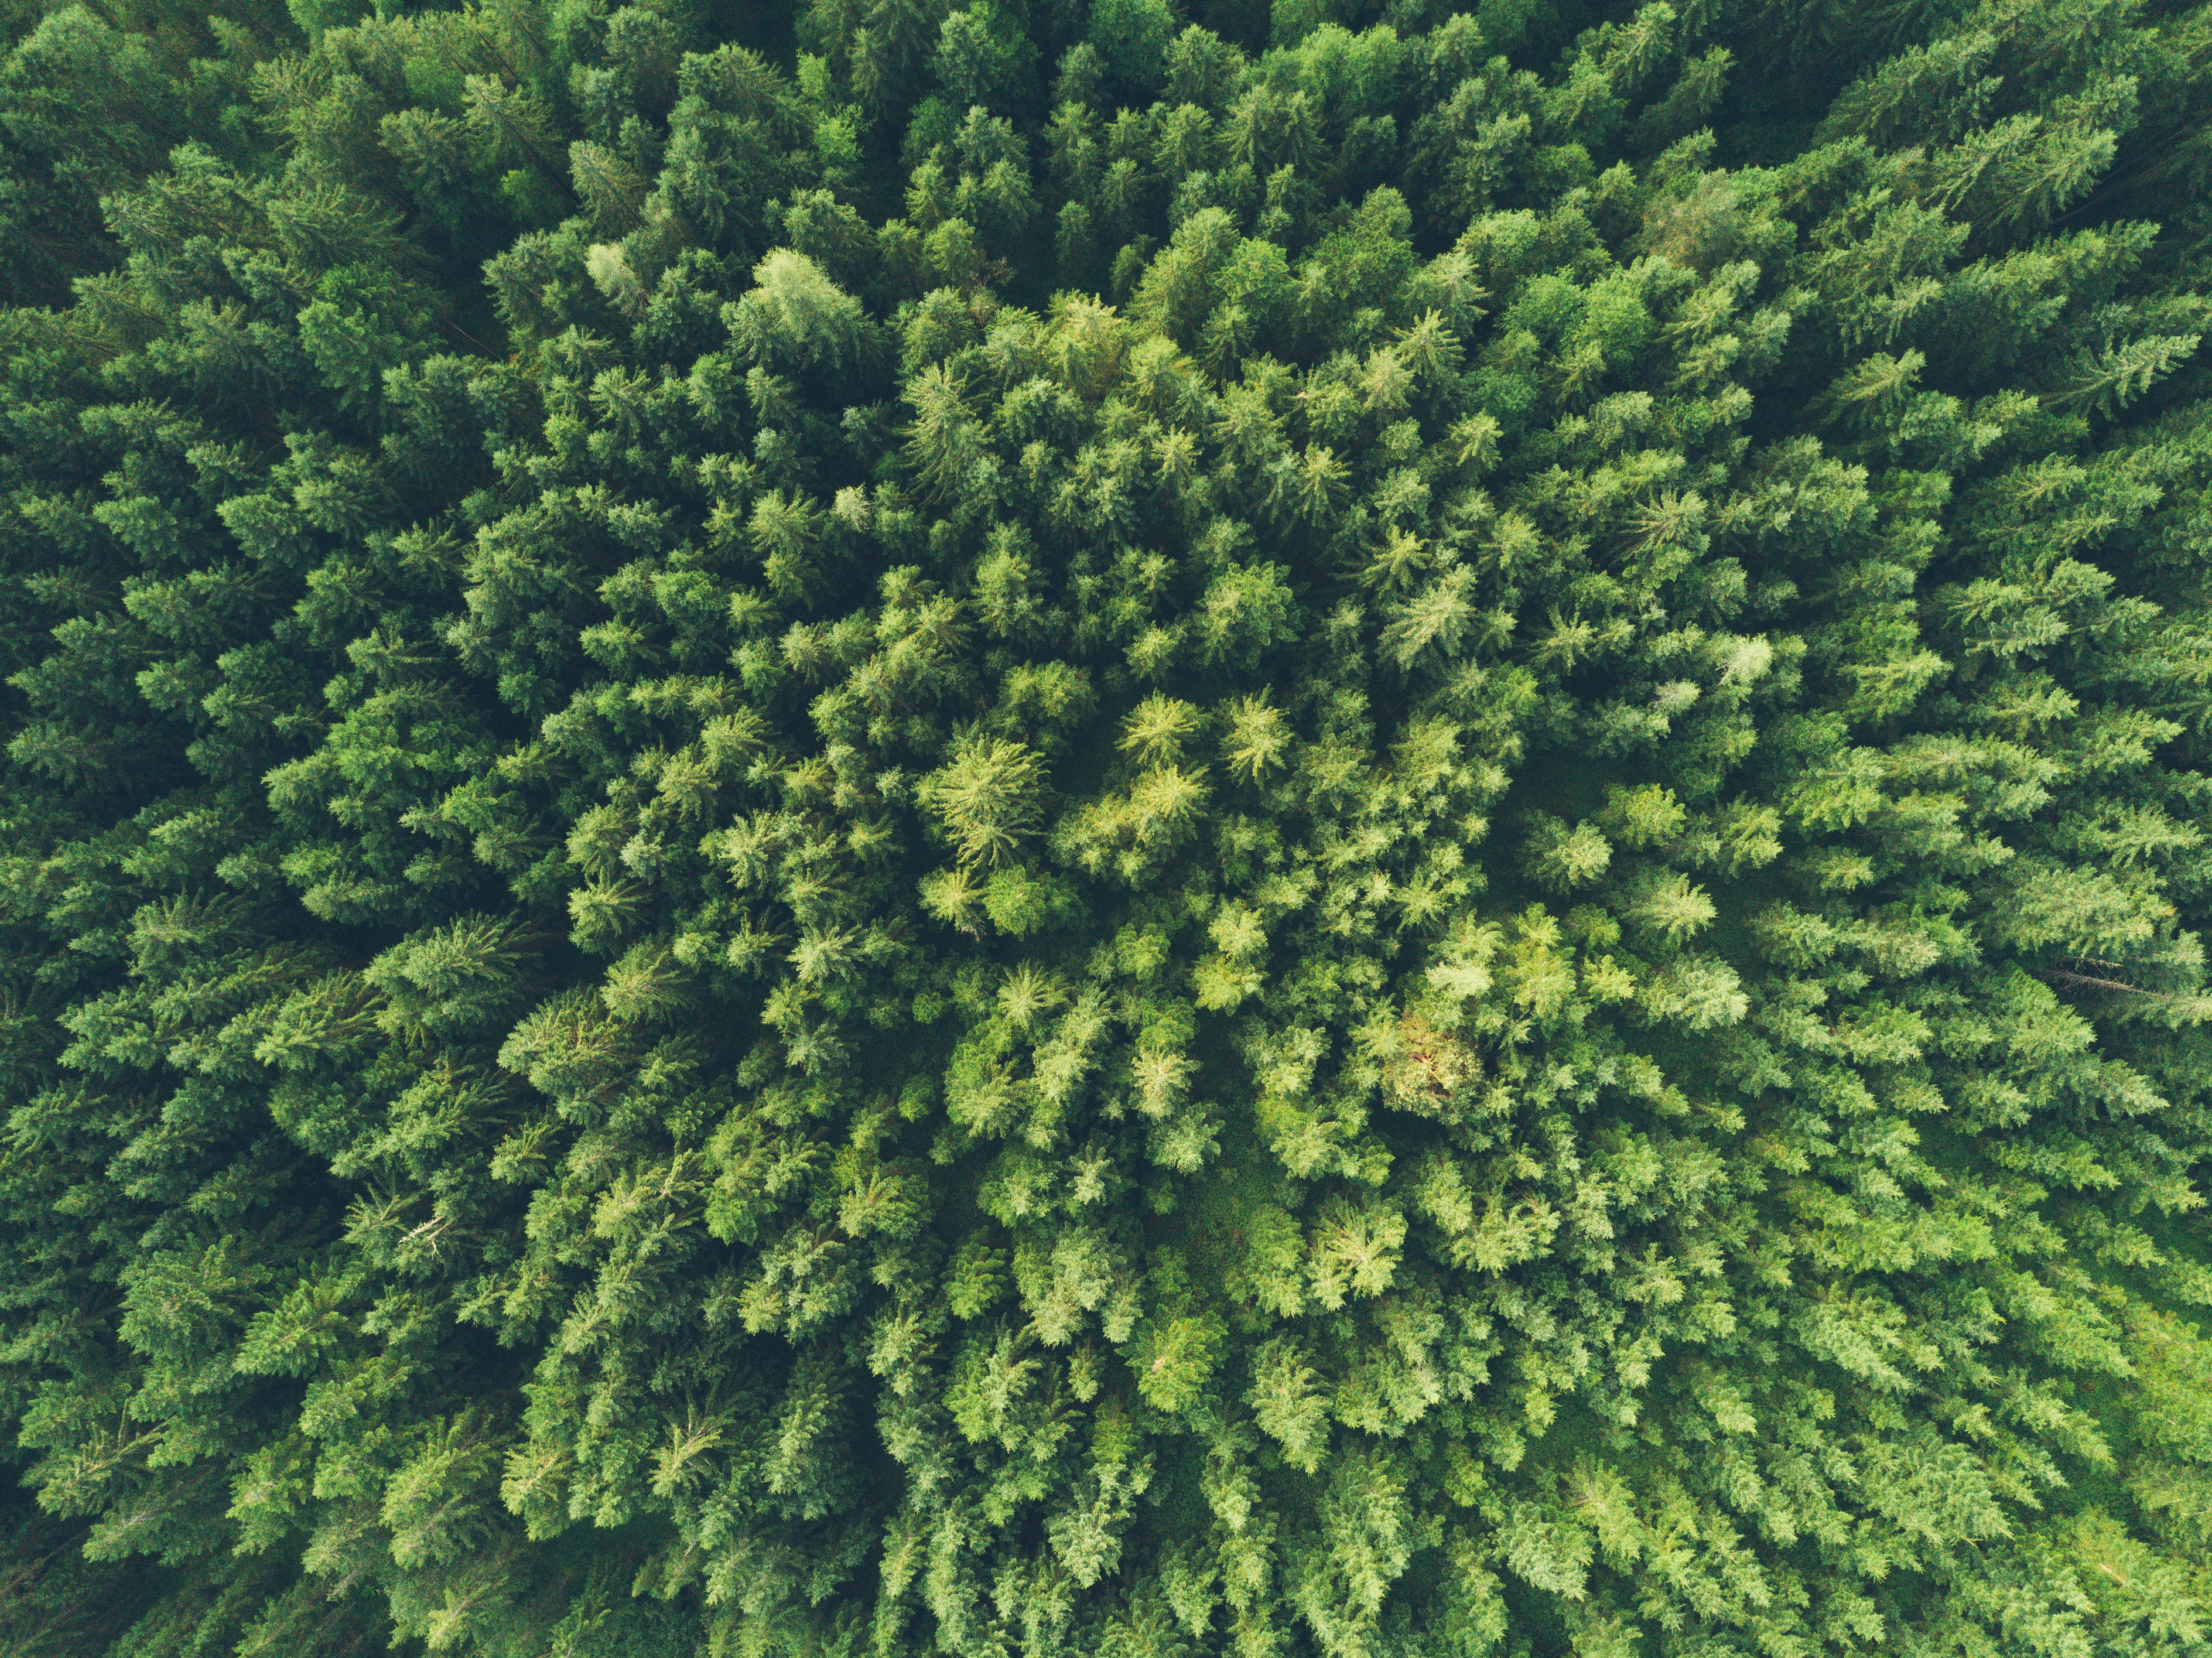 a forest shot from above